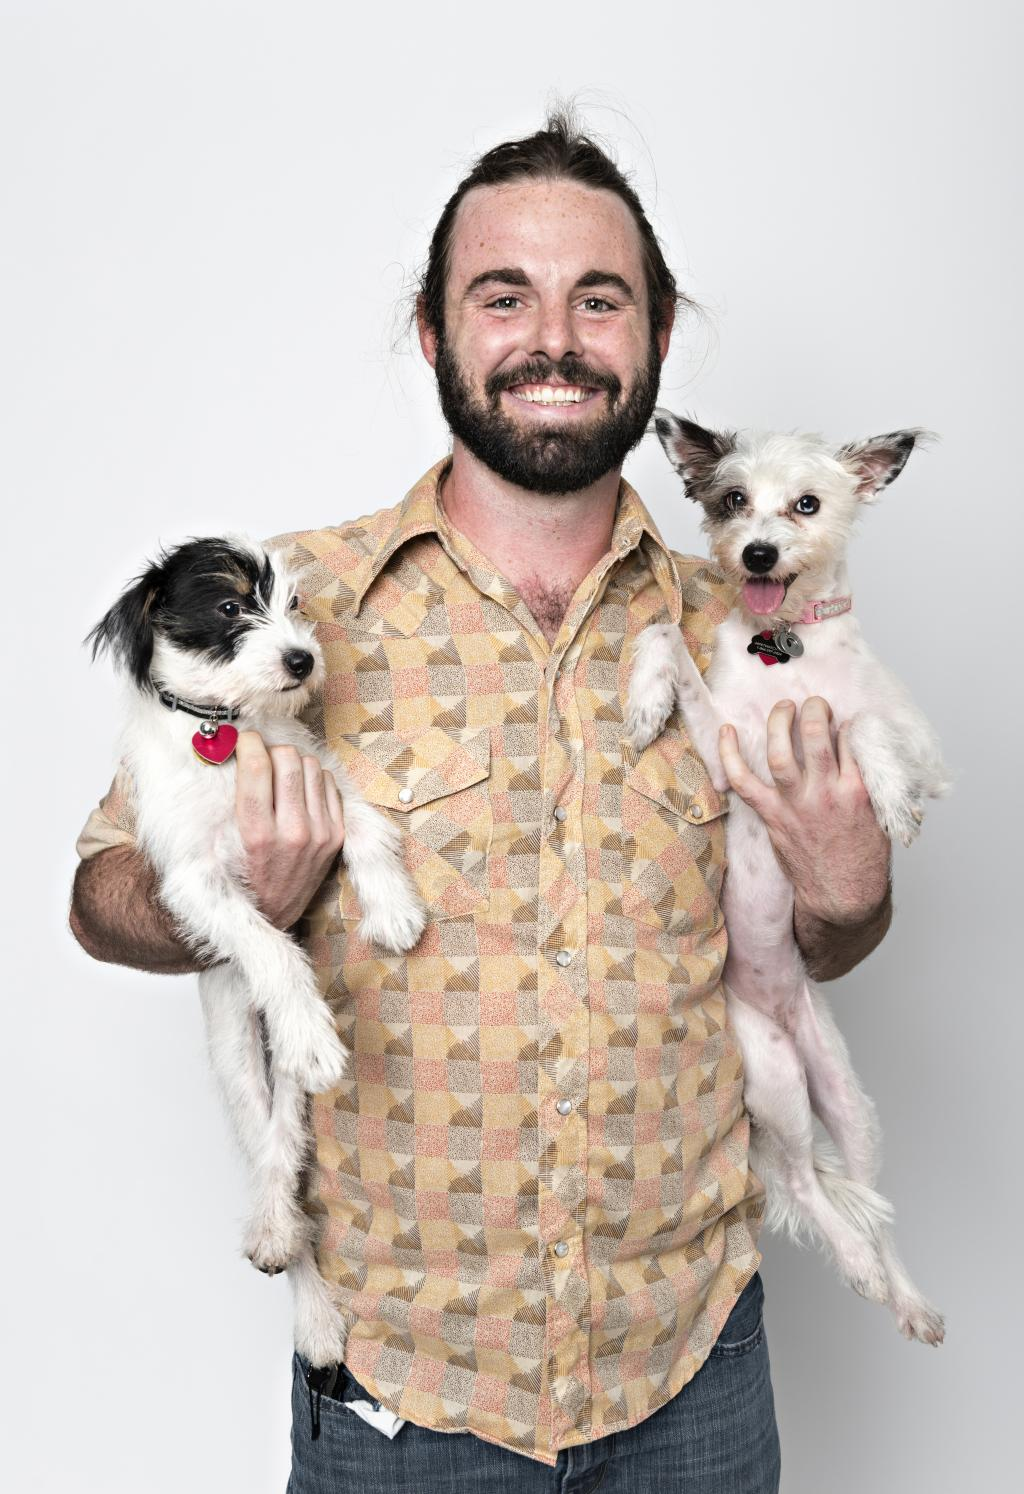 tim and dogs